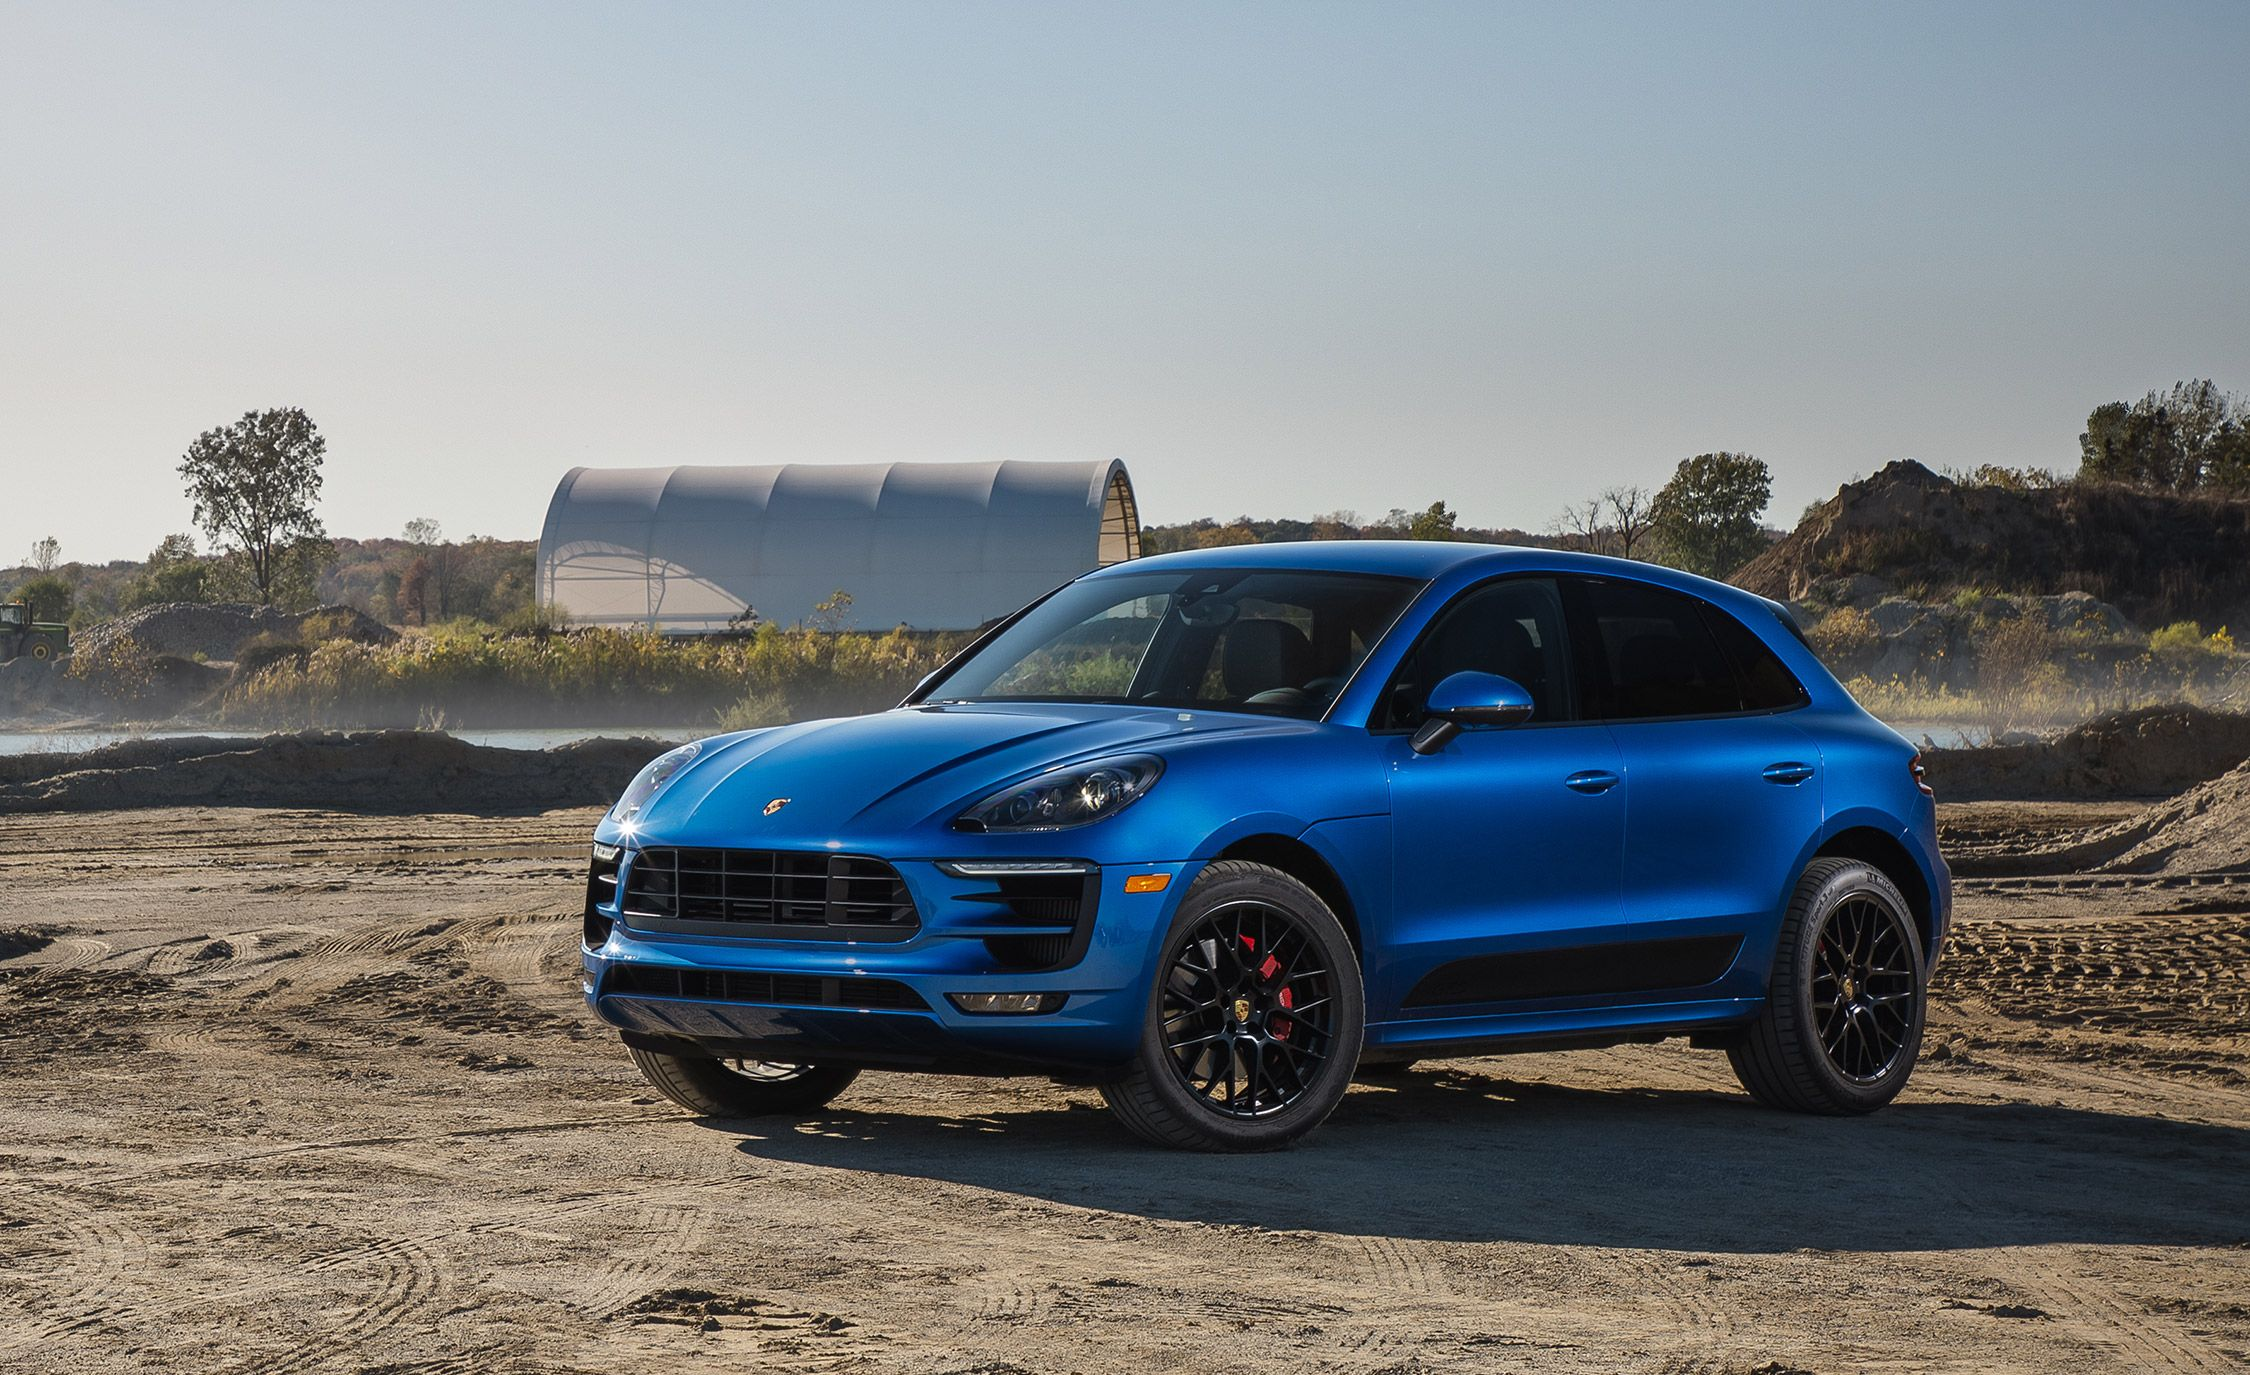 2018 Porsche Macan   In-Depth Model Review   Car and Driver